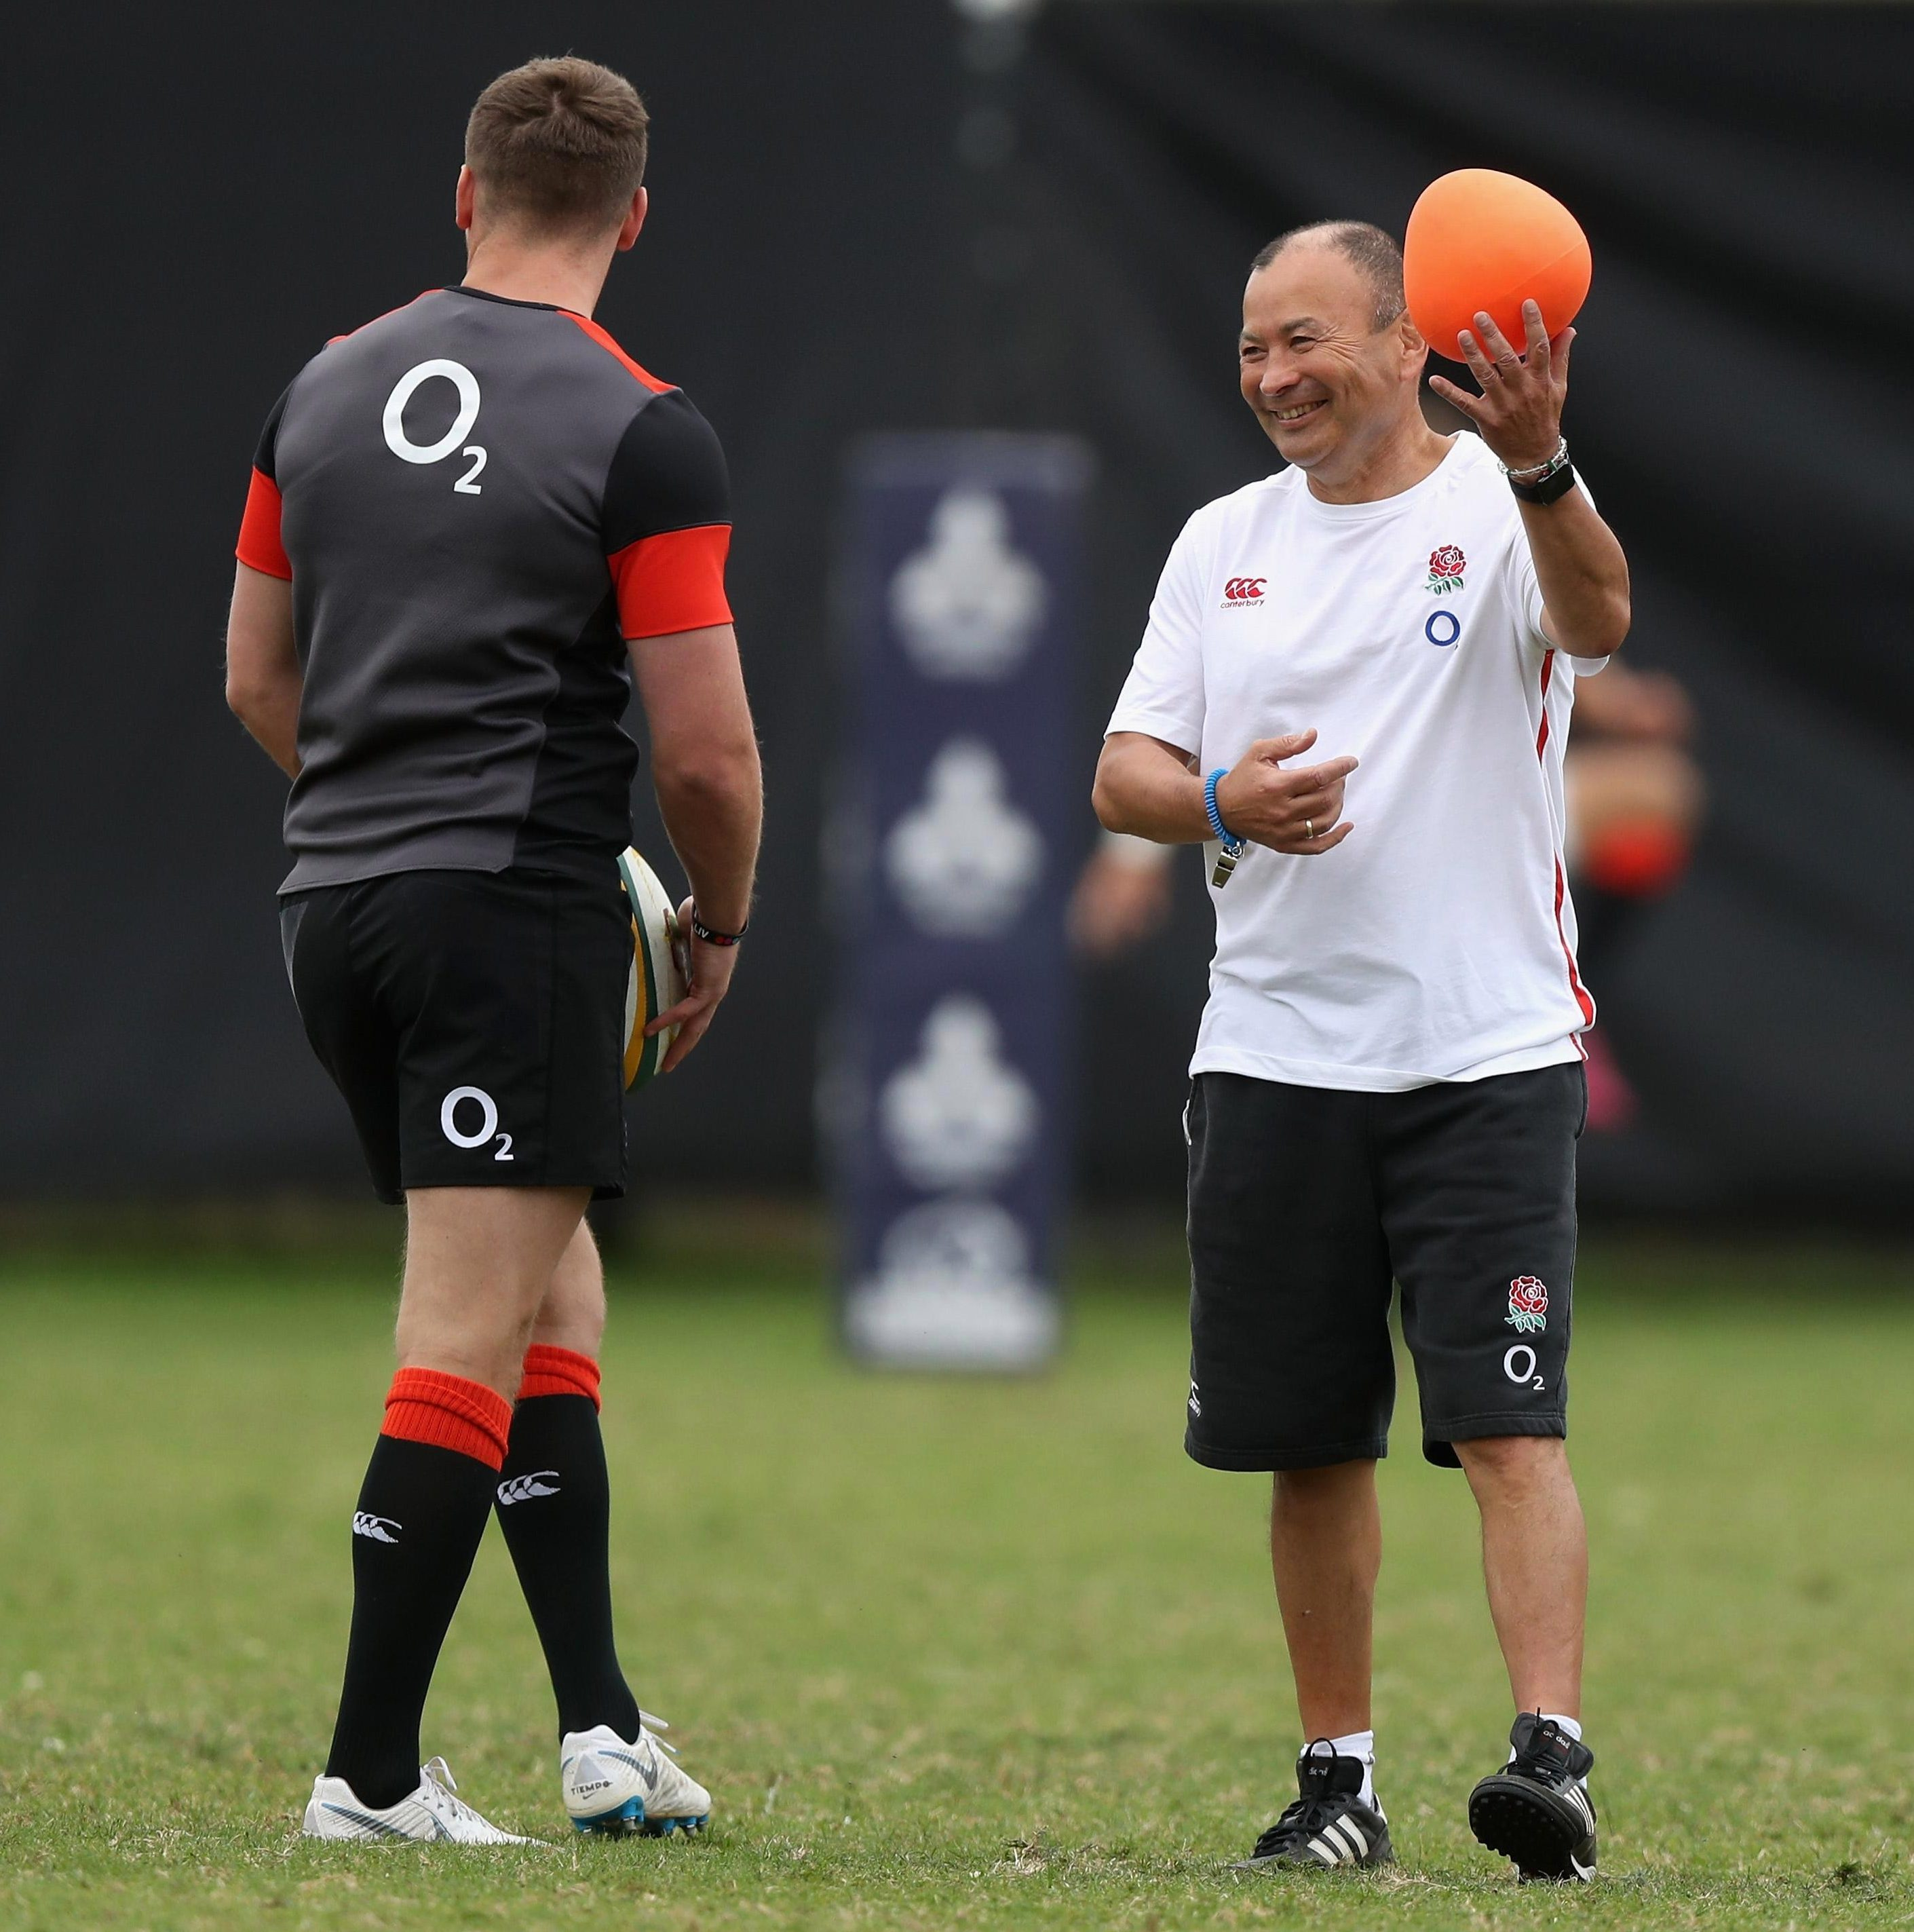 Eddie Jones smiles as he watches Owen Farrell in training at Durban